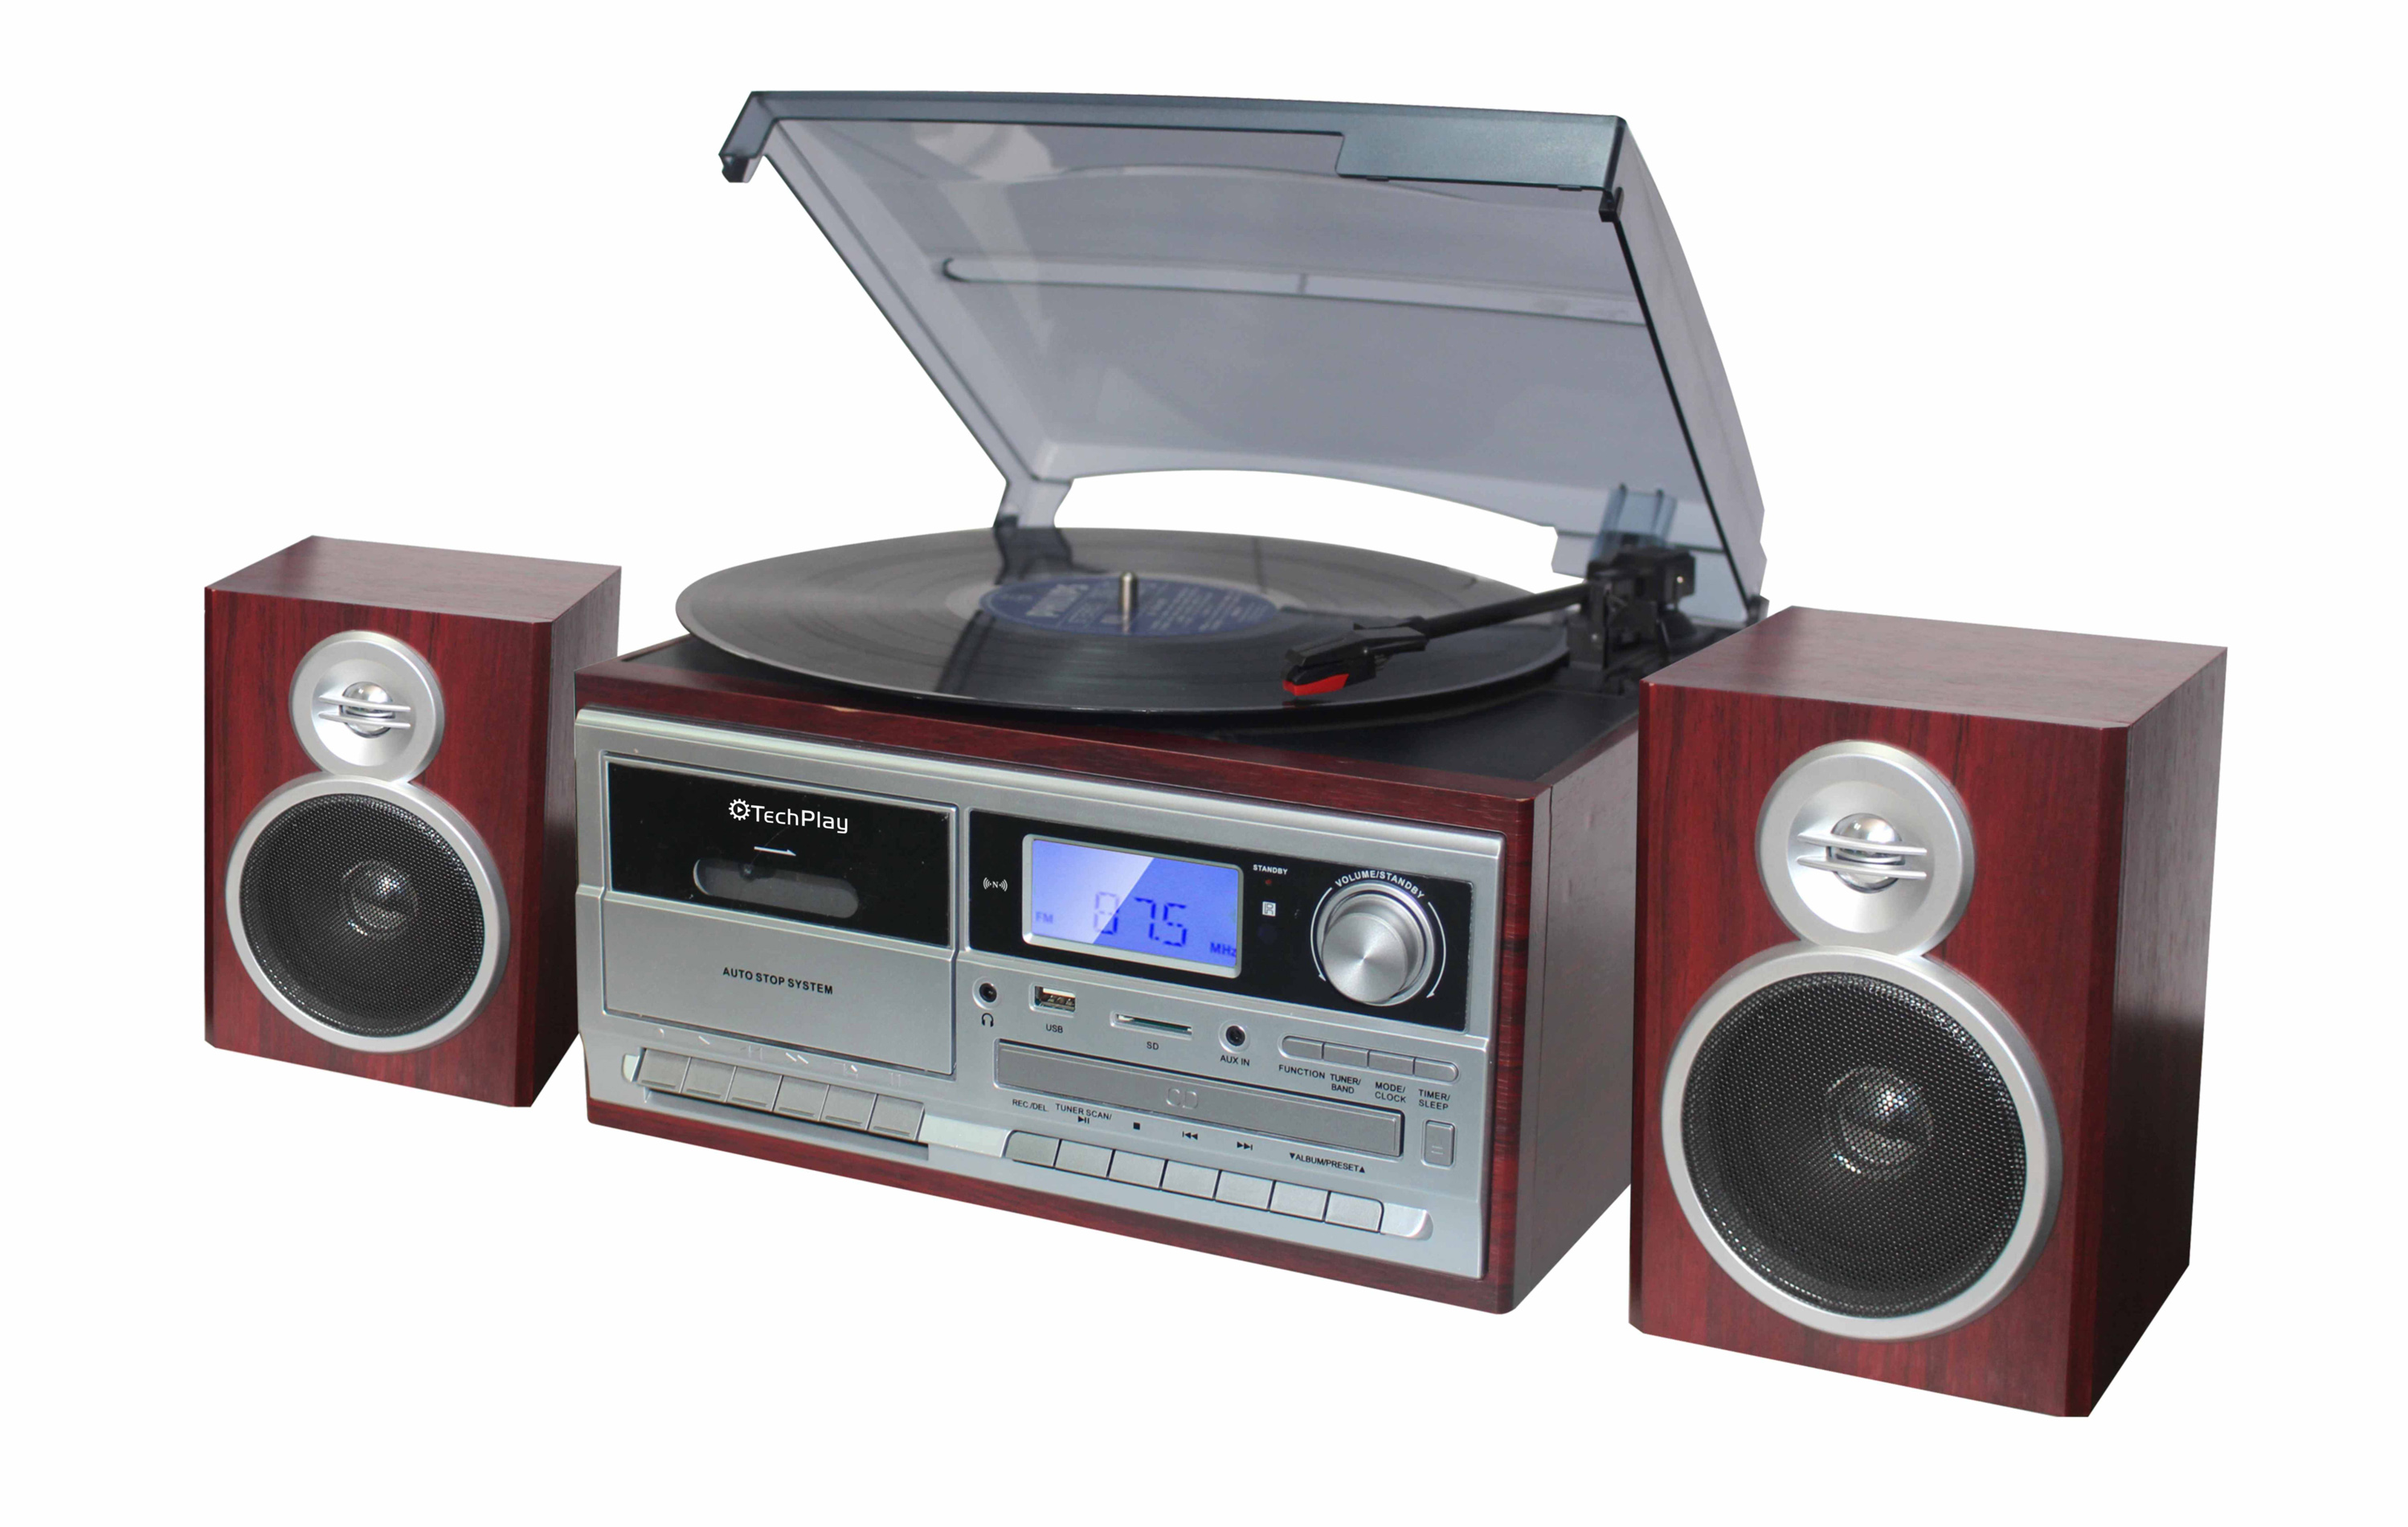 TechPlay ODC128BT 3-Speed Turntable with Cassette player/recorde